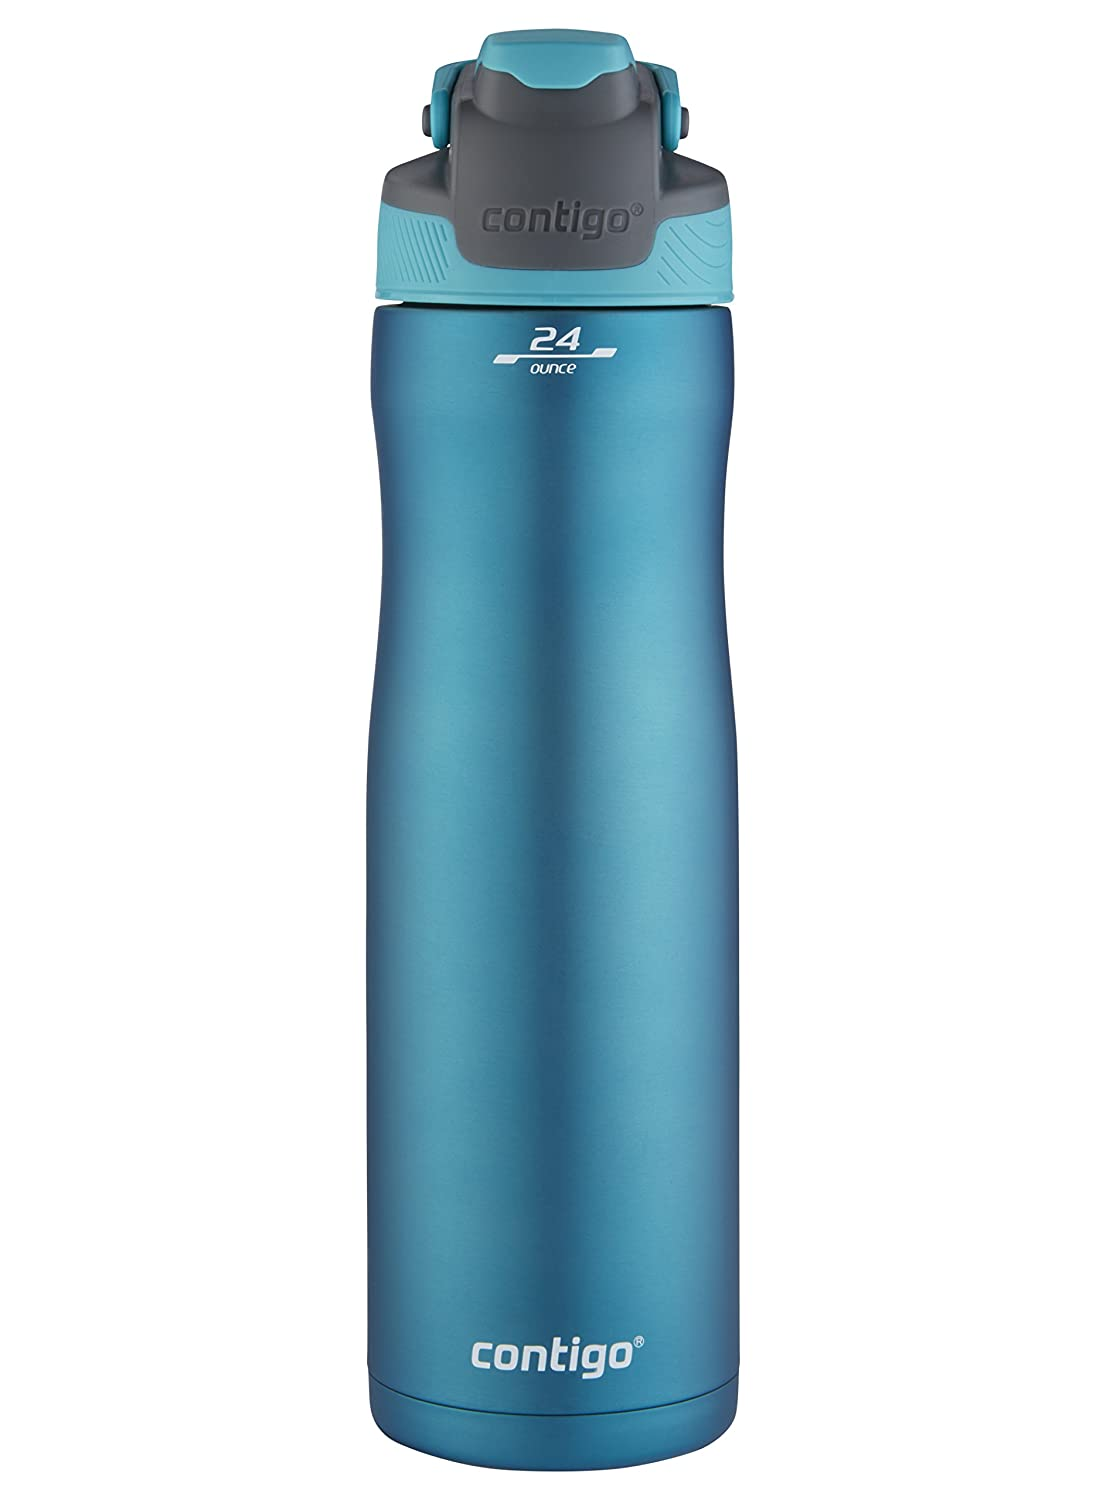 Contigo AUTOSEAL Chill Stainless Steel Water Bottle, 24 oz, Scuba